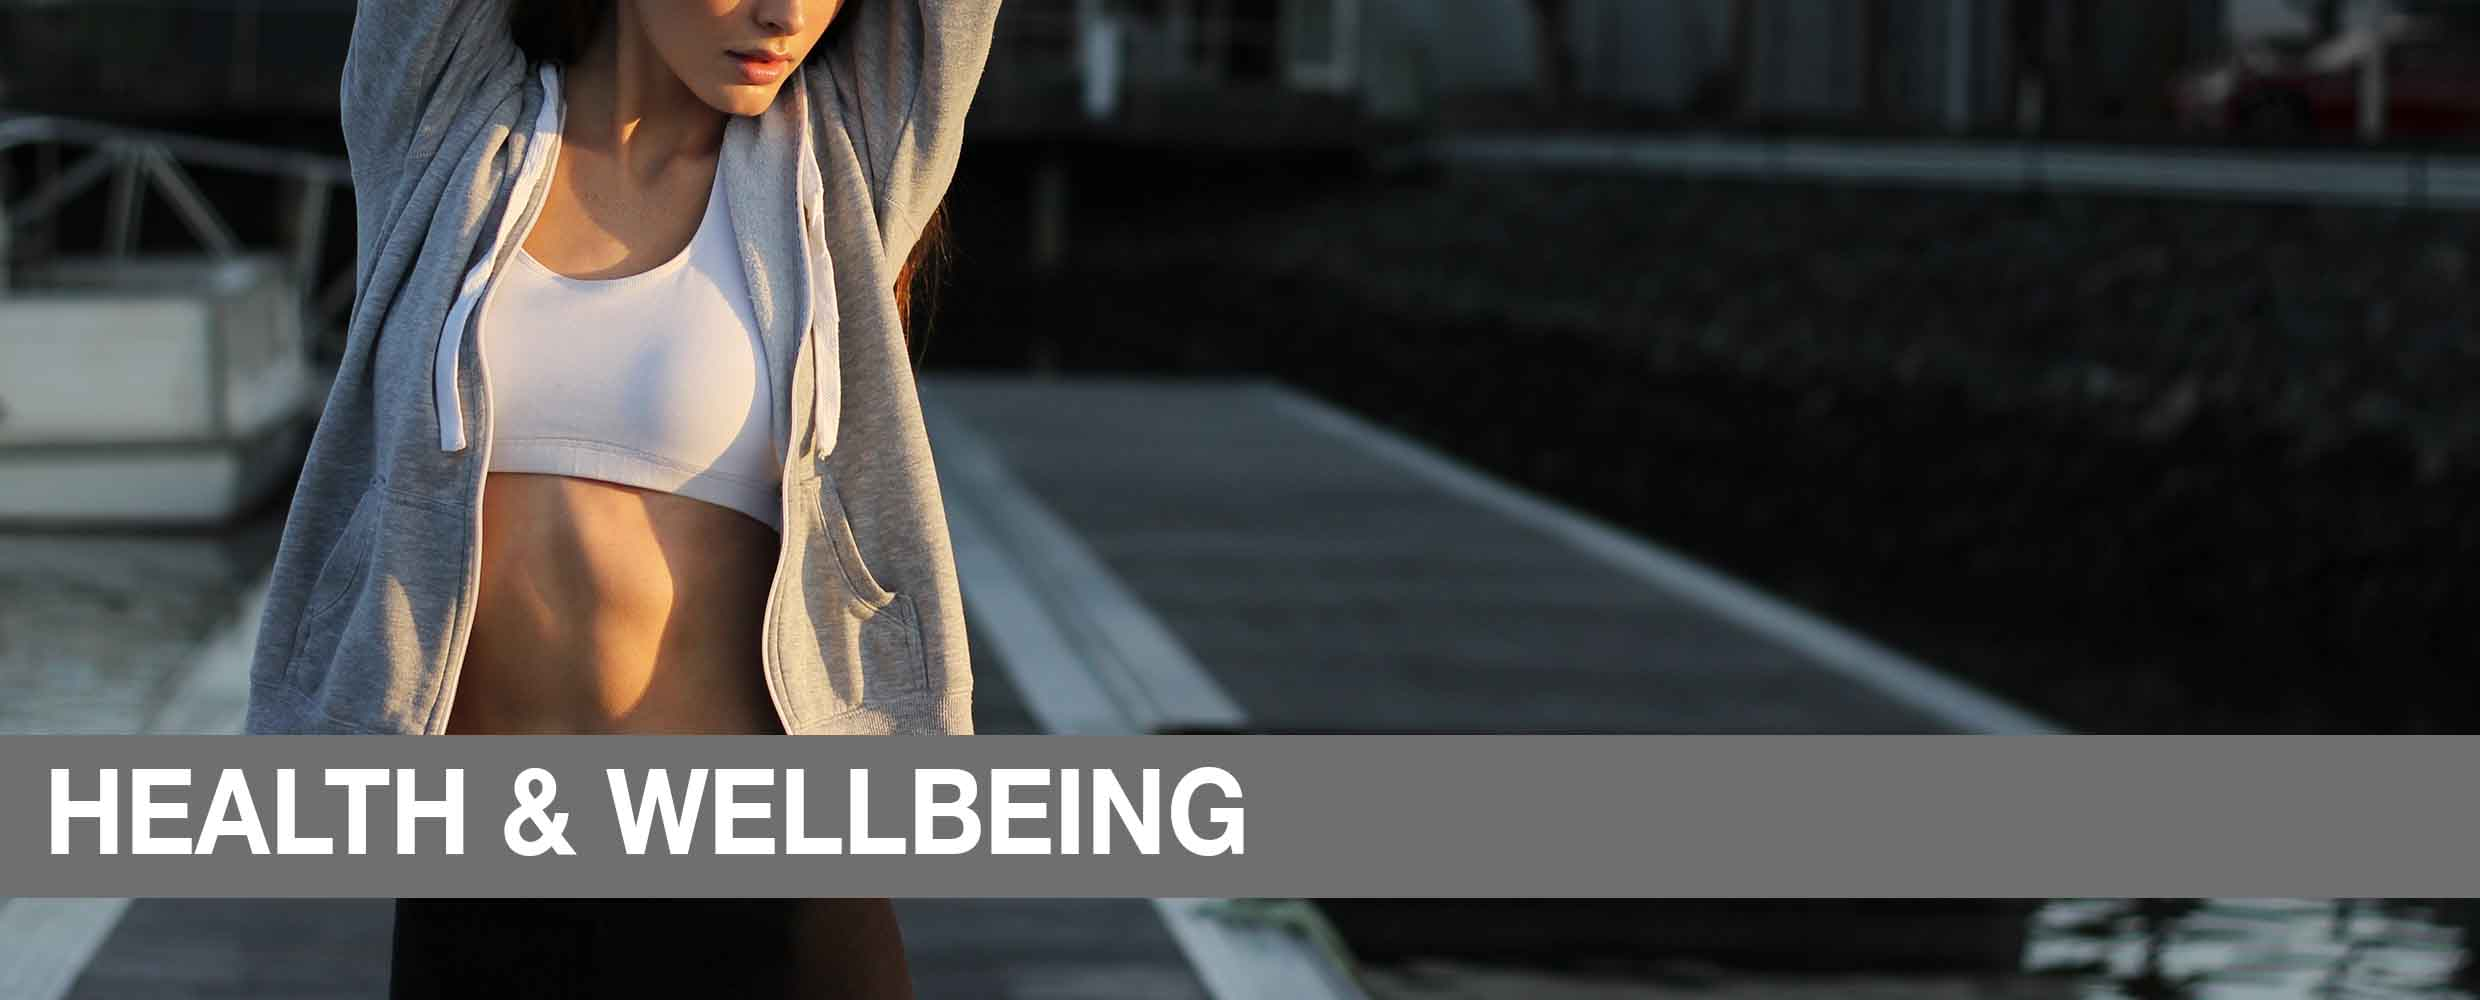 HEADER-BANNERS - HEALTH-WELLBEING-BANNER-HEADER